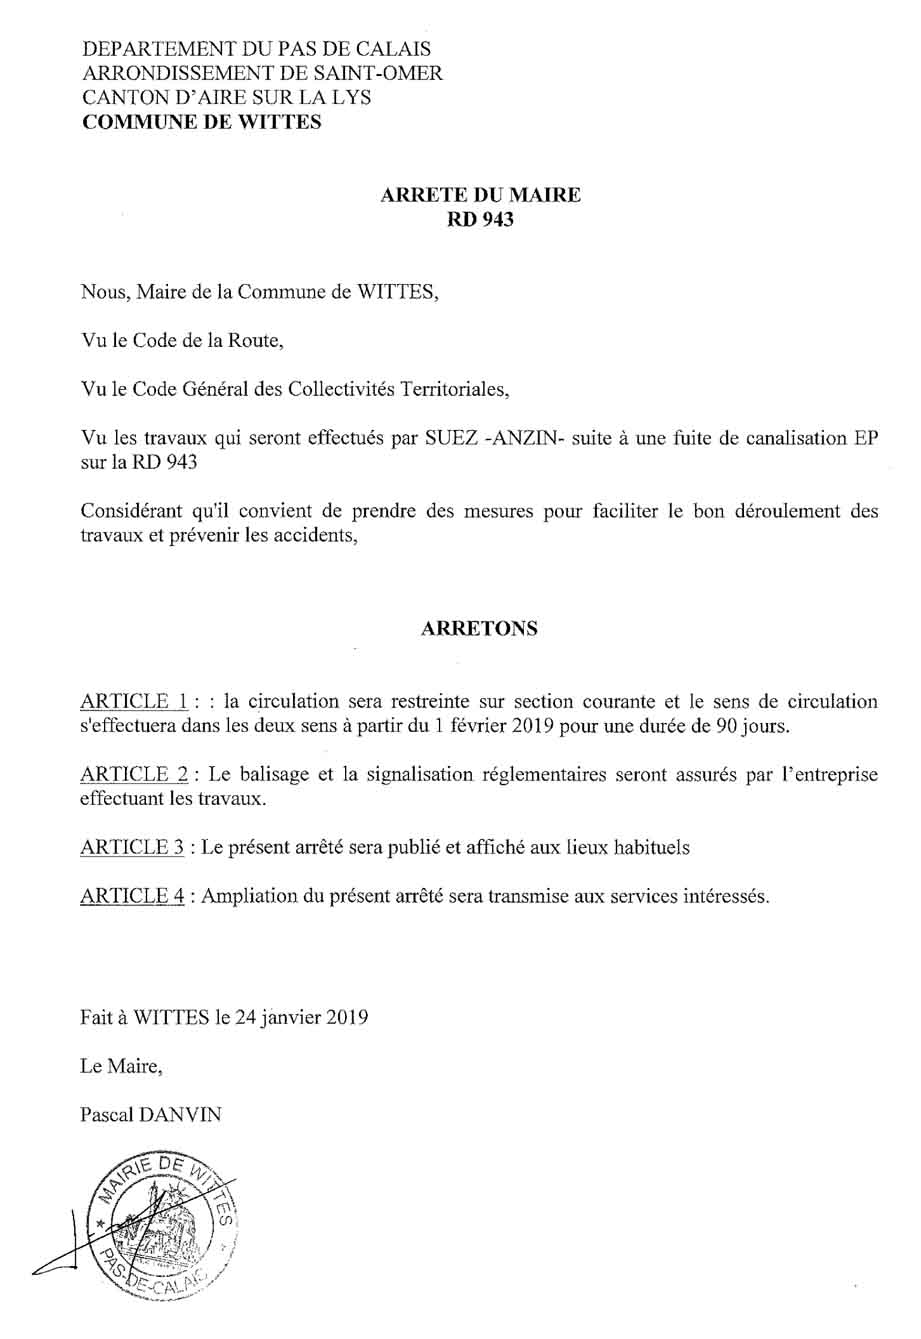 Arrete restriction de circulation rd 943